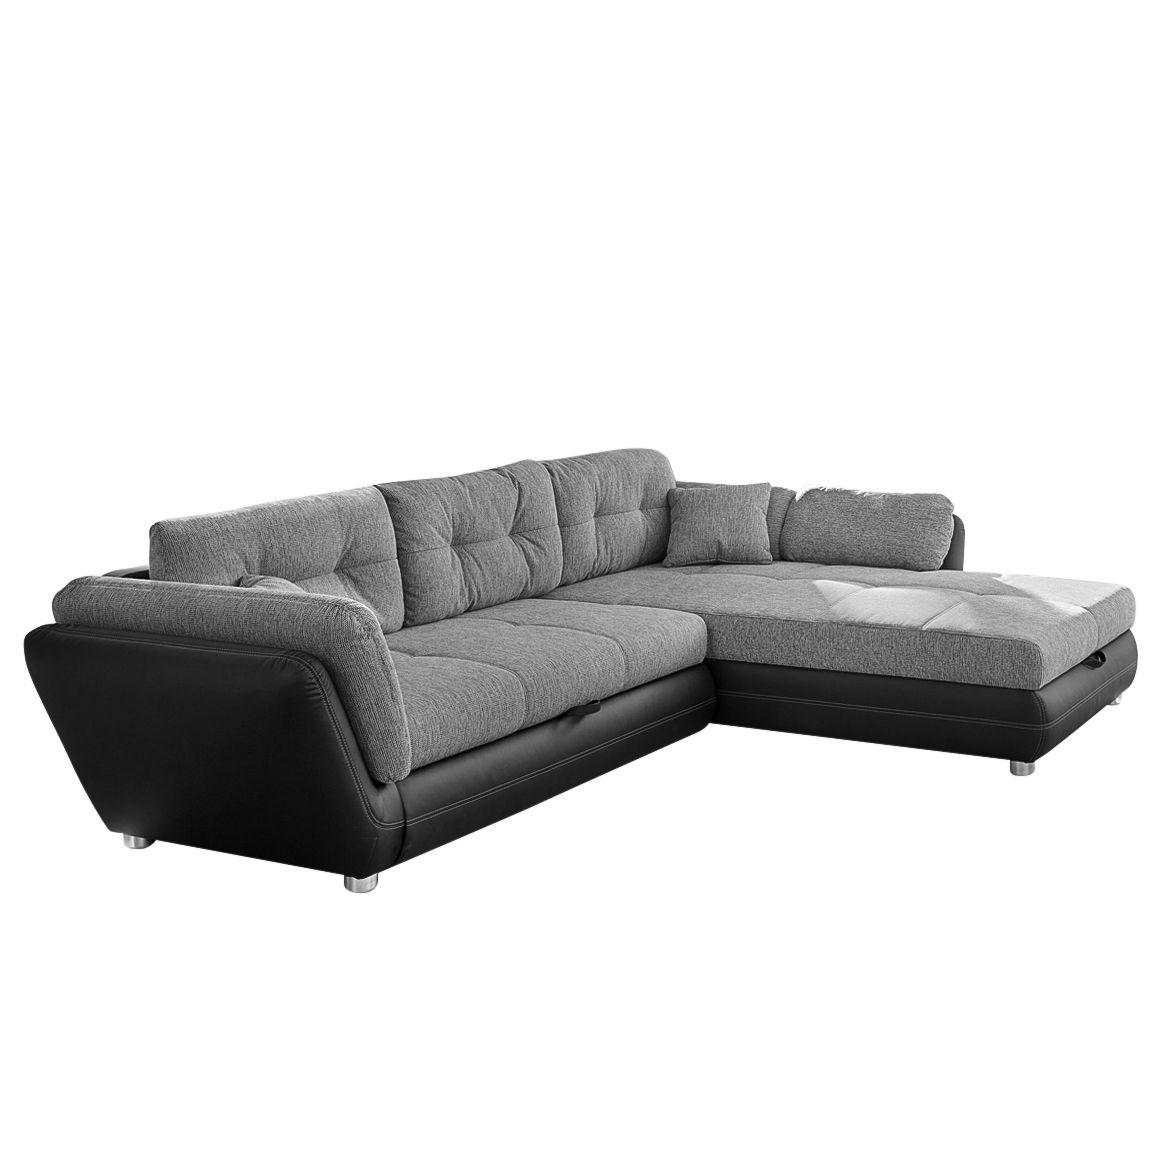 ecksofa mit schlaffunktion ikea super ecksofa mit. Black Bedroom Furniture Sets. Home Design Ideas